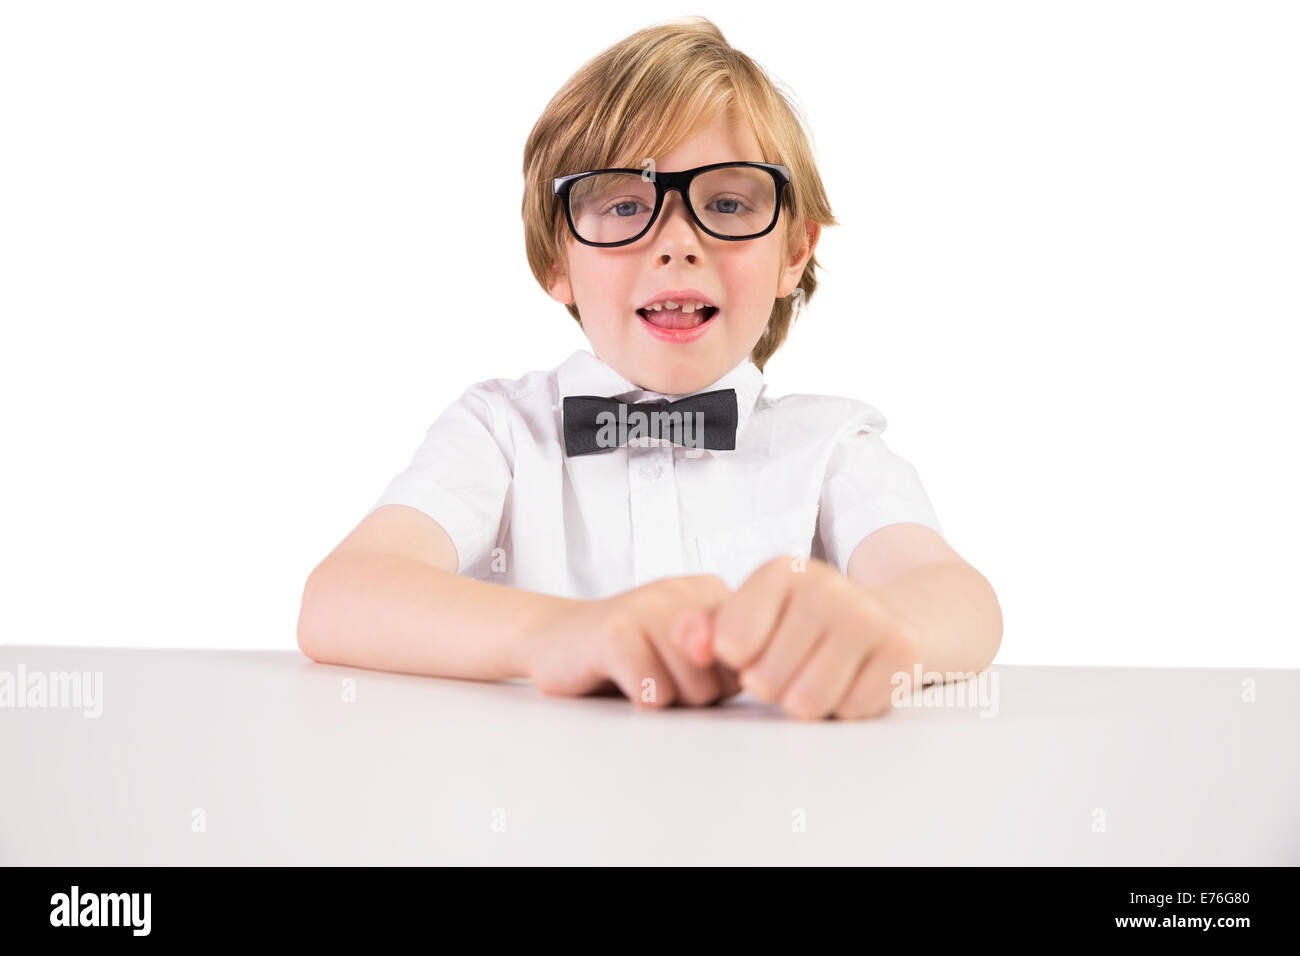 Student wearing glasses and bow tie - Stock Image